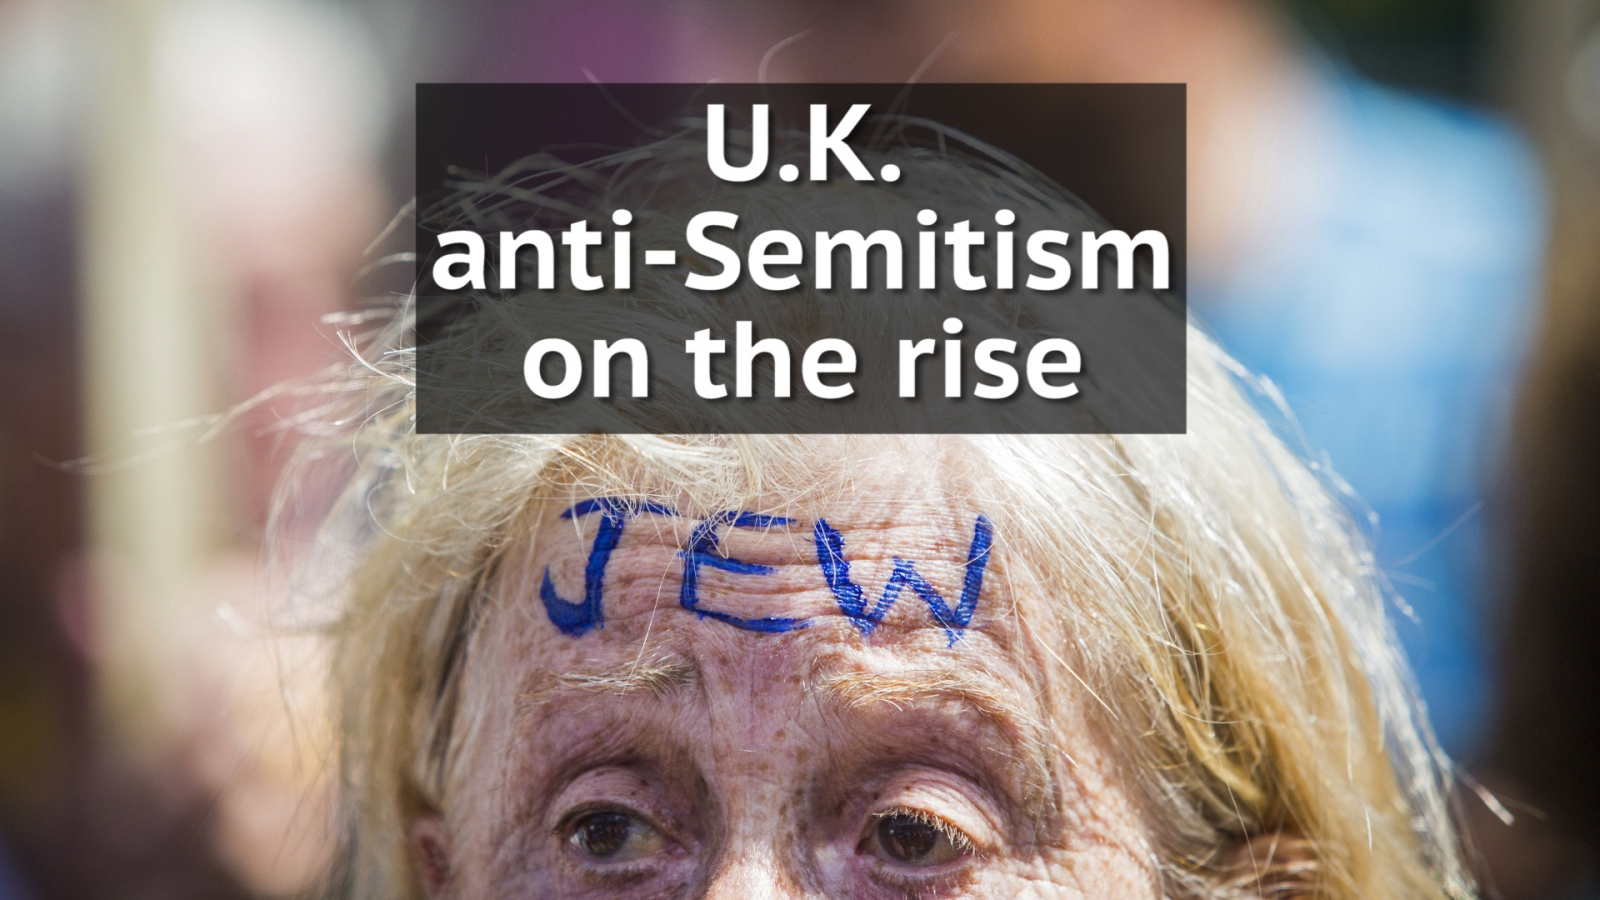 Record number of anti-Semitic incidents blamed on 'mood of racism' in UK following Brexit